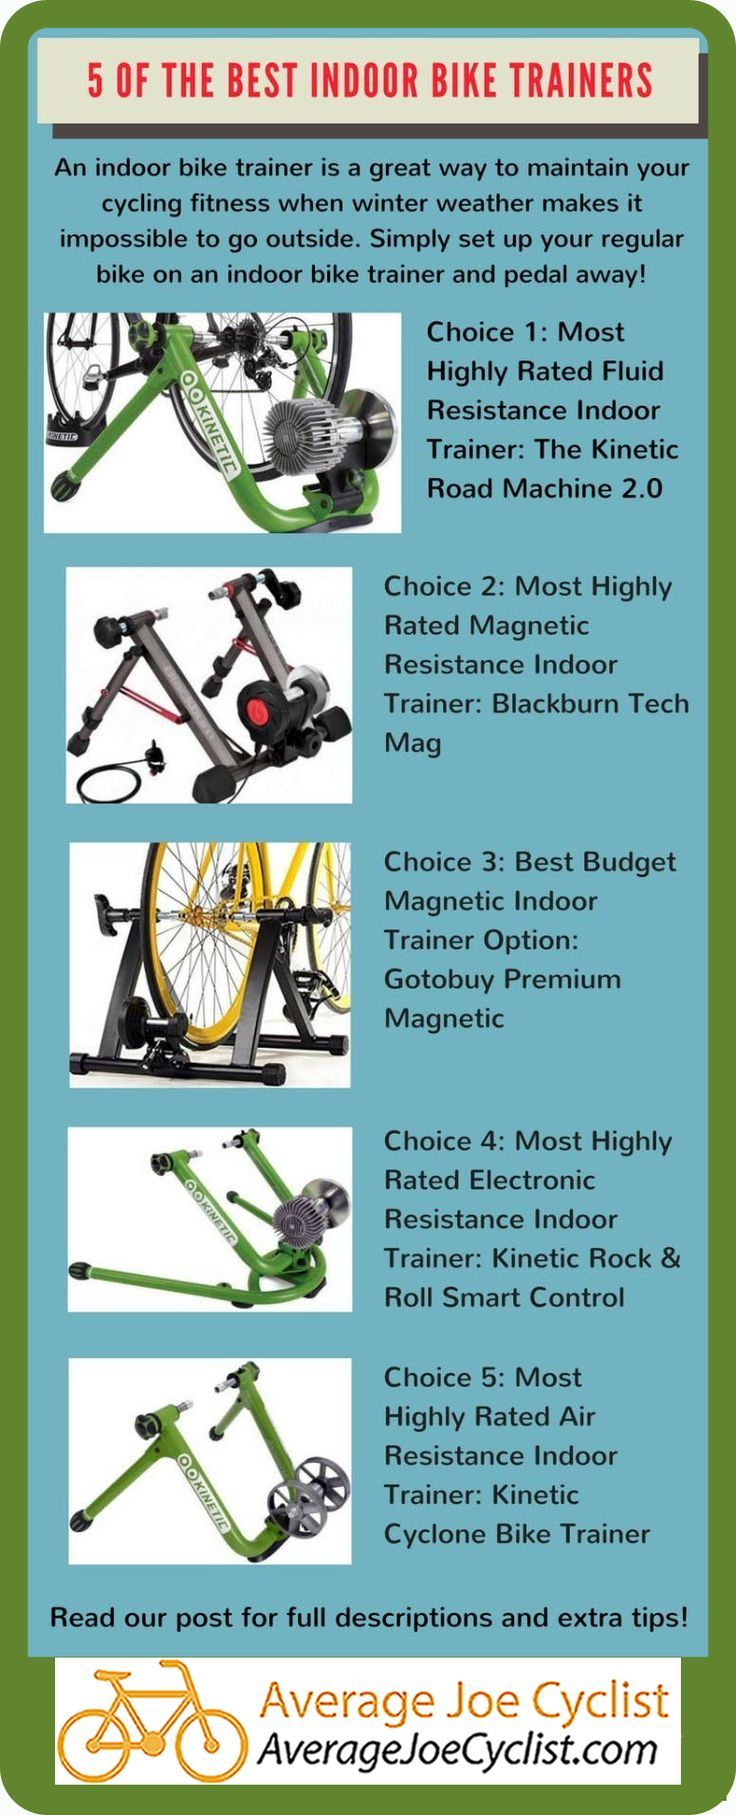 5 Of The Best Budget Indoor Bike Trainers 2020 In 2020 Bike